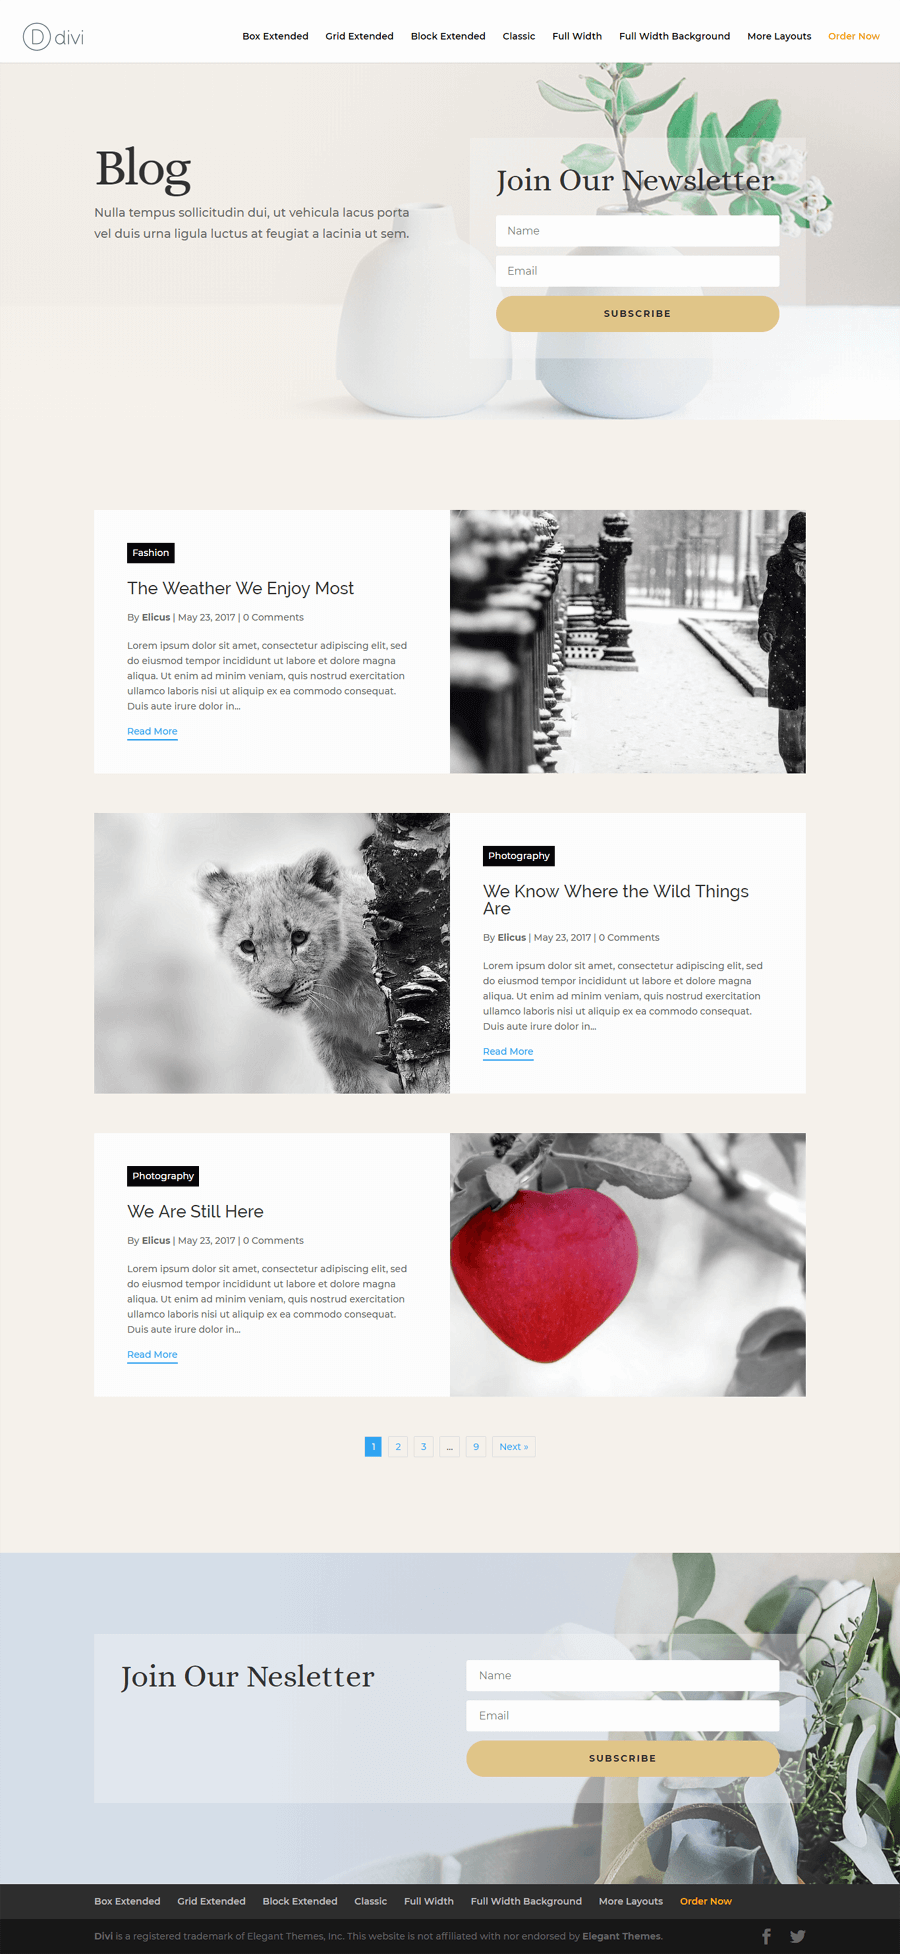 Divi blog extras front page view